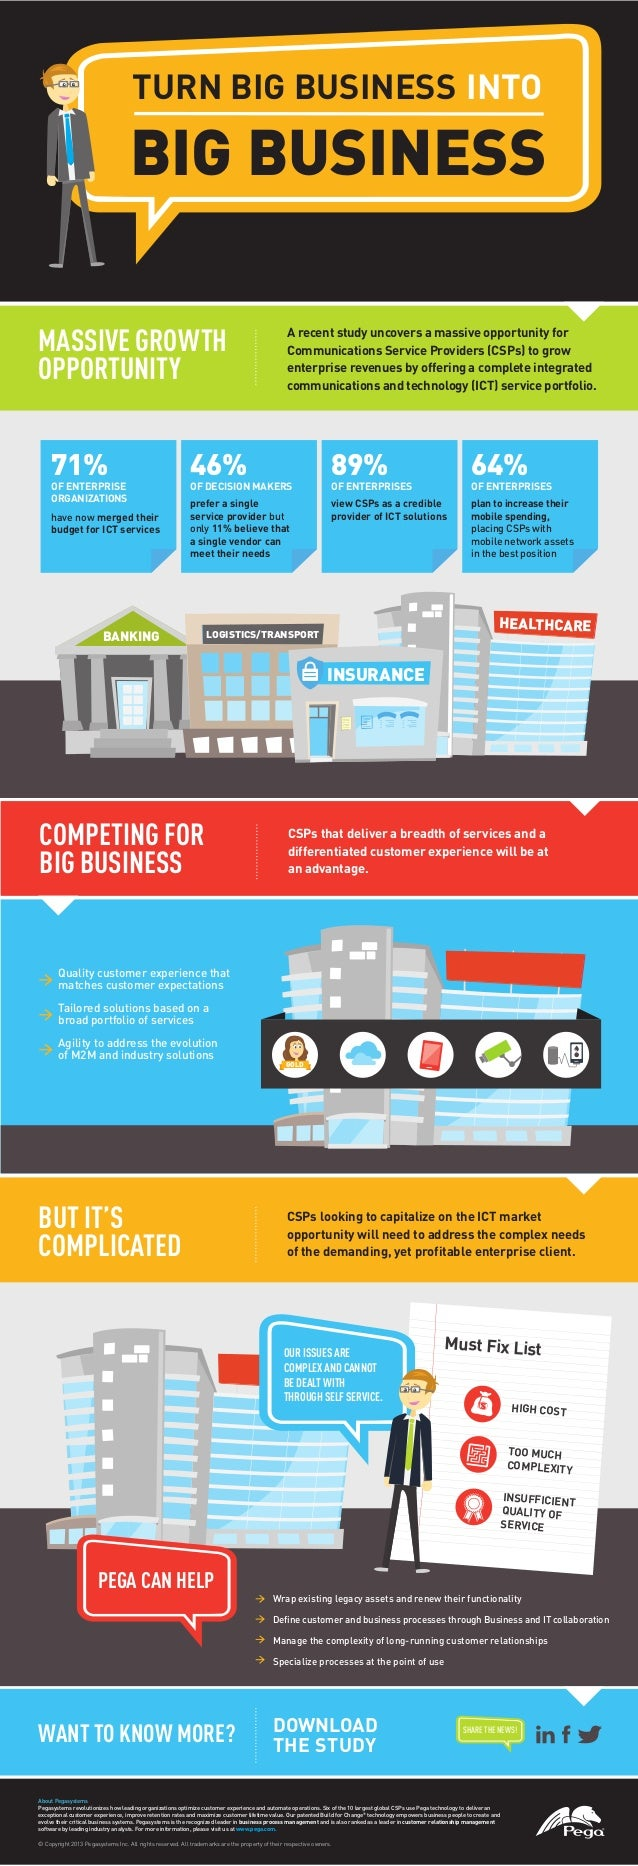 Turn Big Business Into Big Business Infographic